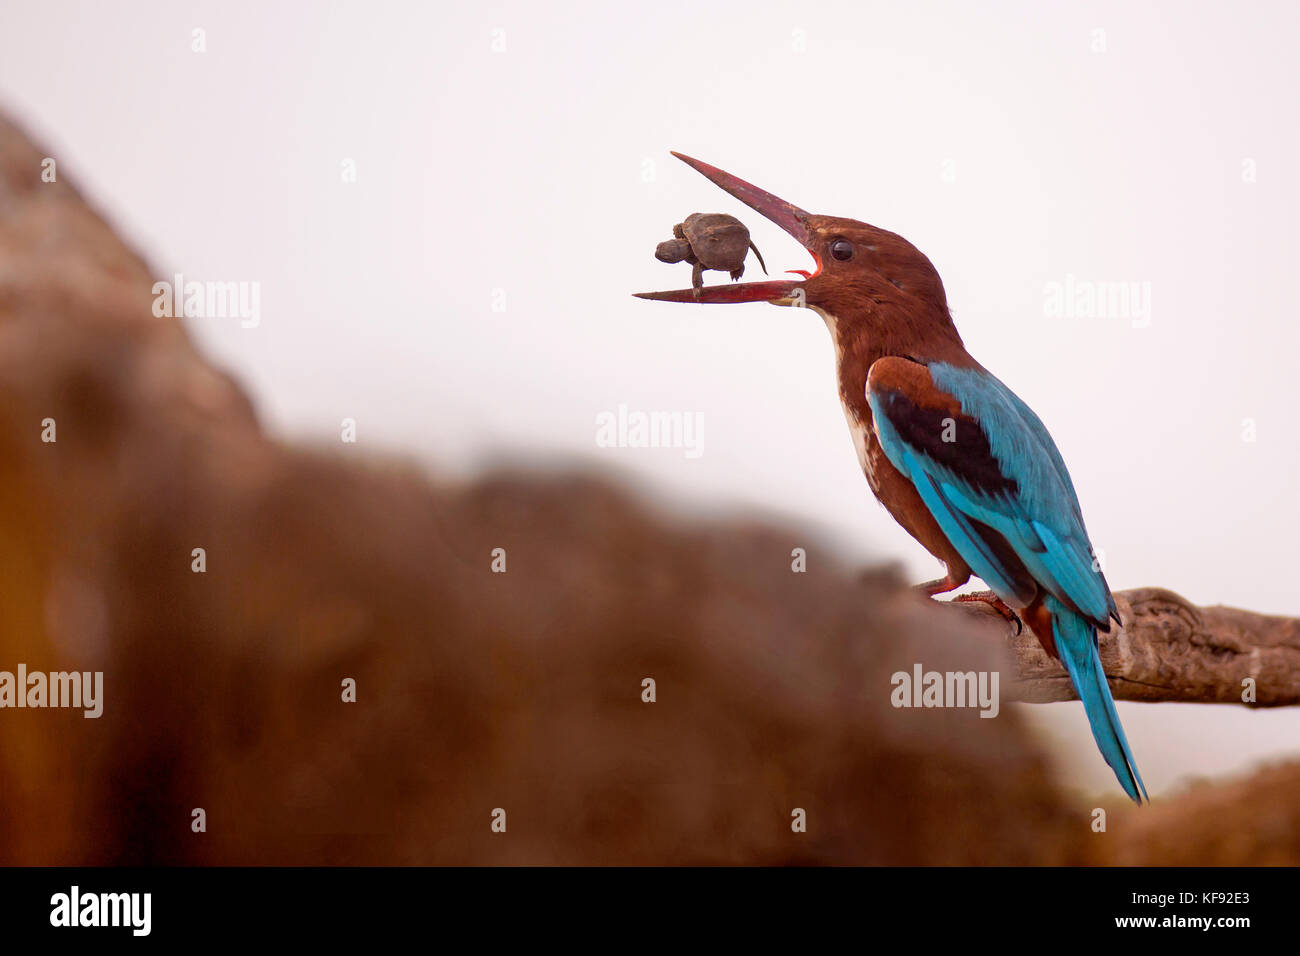 White-throated Kingfisher (Halcyon smyrnensis) with a tortoise in its beak, Negev, Israel - Stock Image